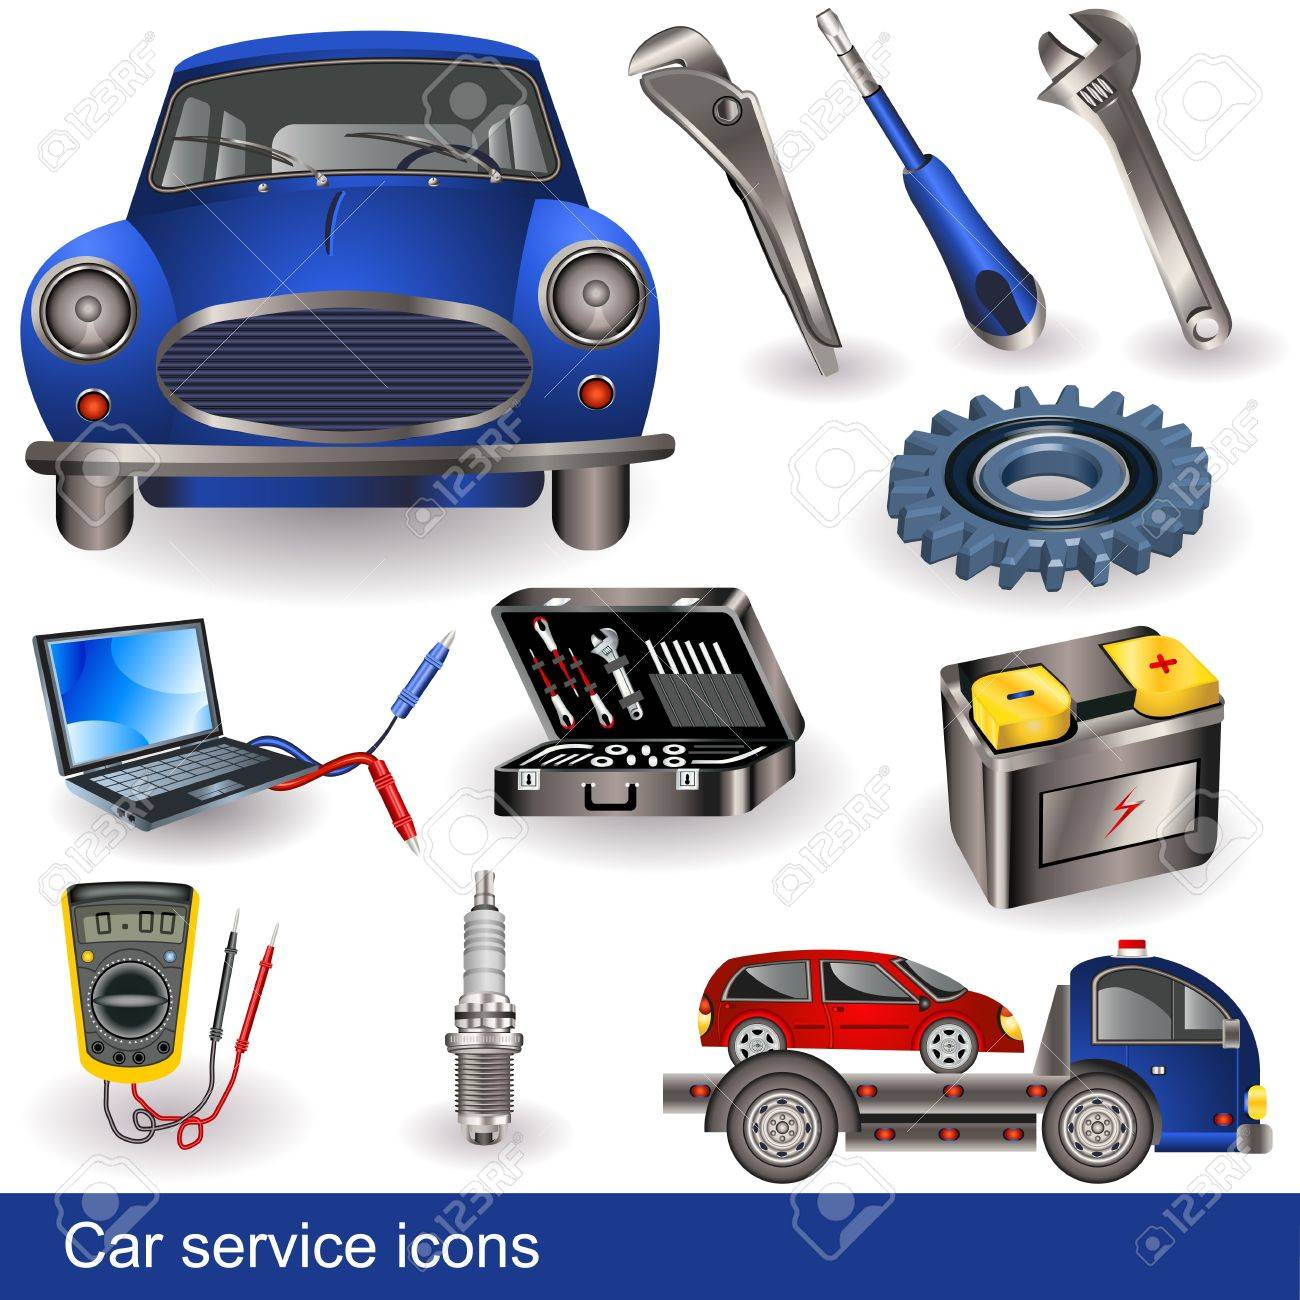 Collection of different car service tools and objects - icons. - 14070939